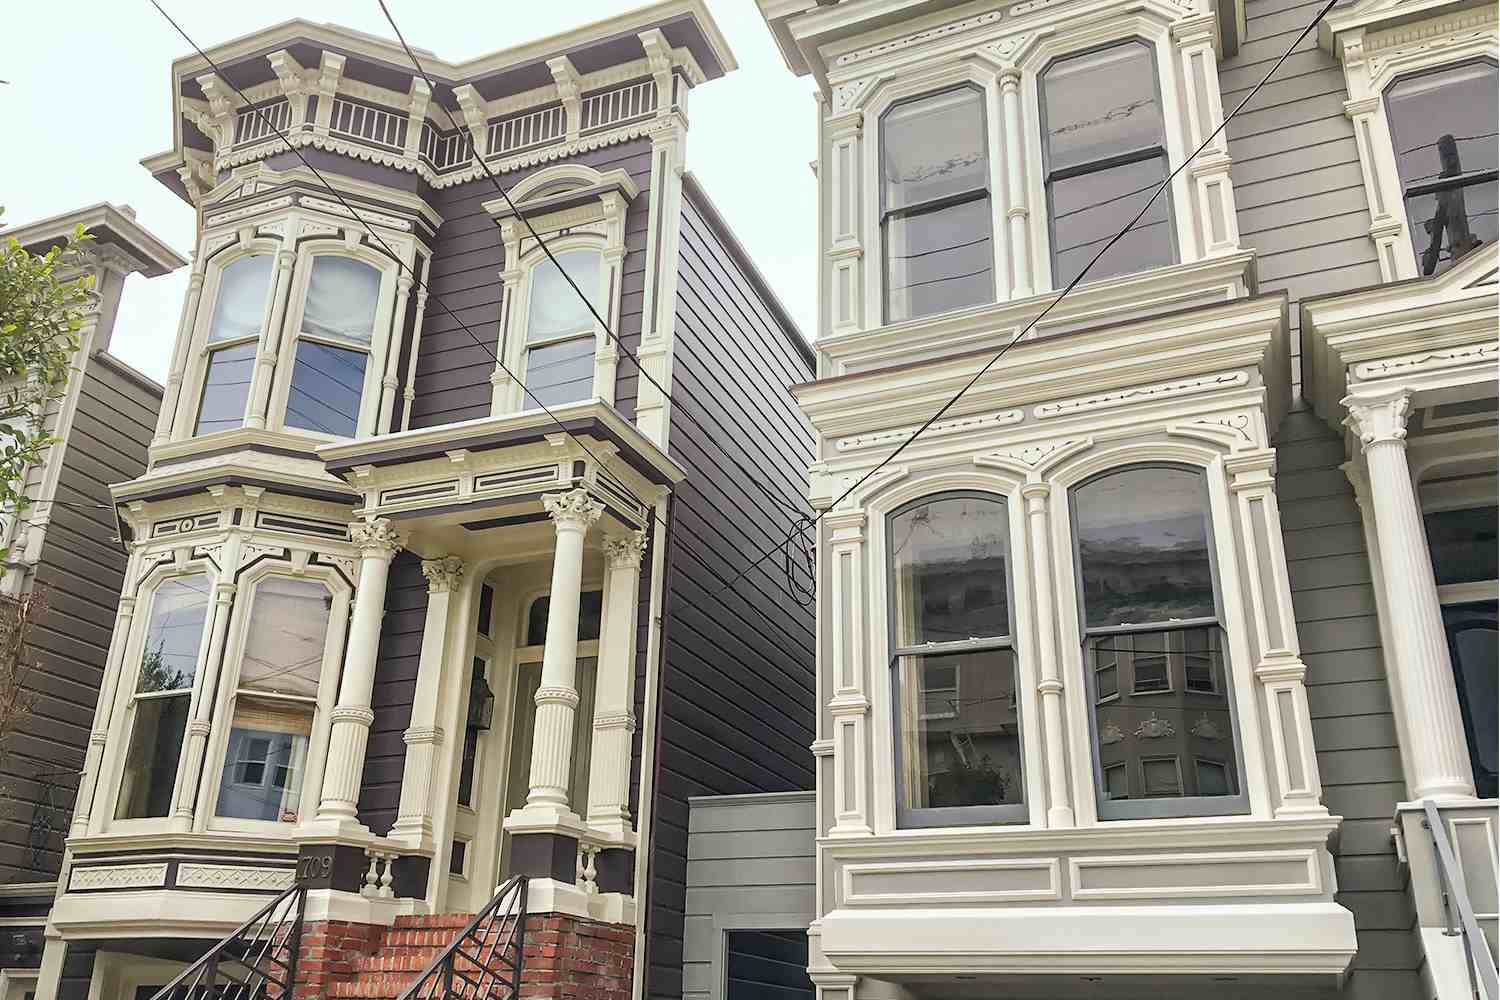 Full House House in San Francisco: Address and Location